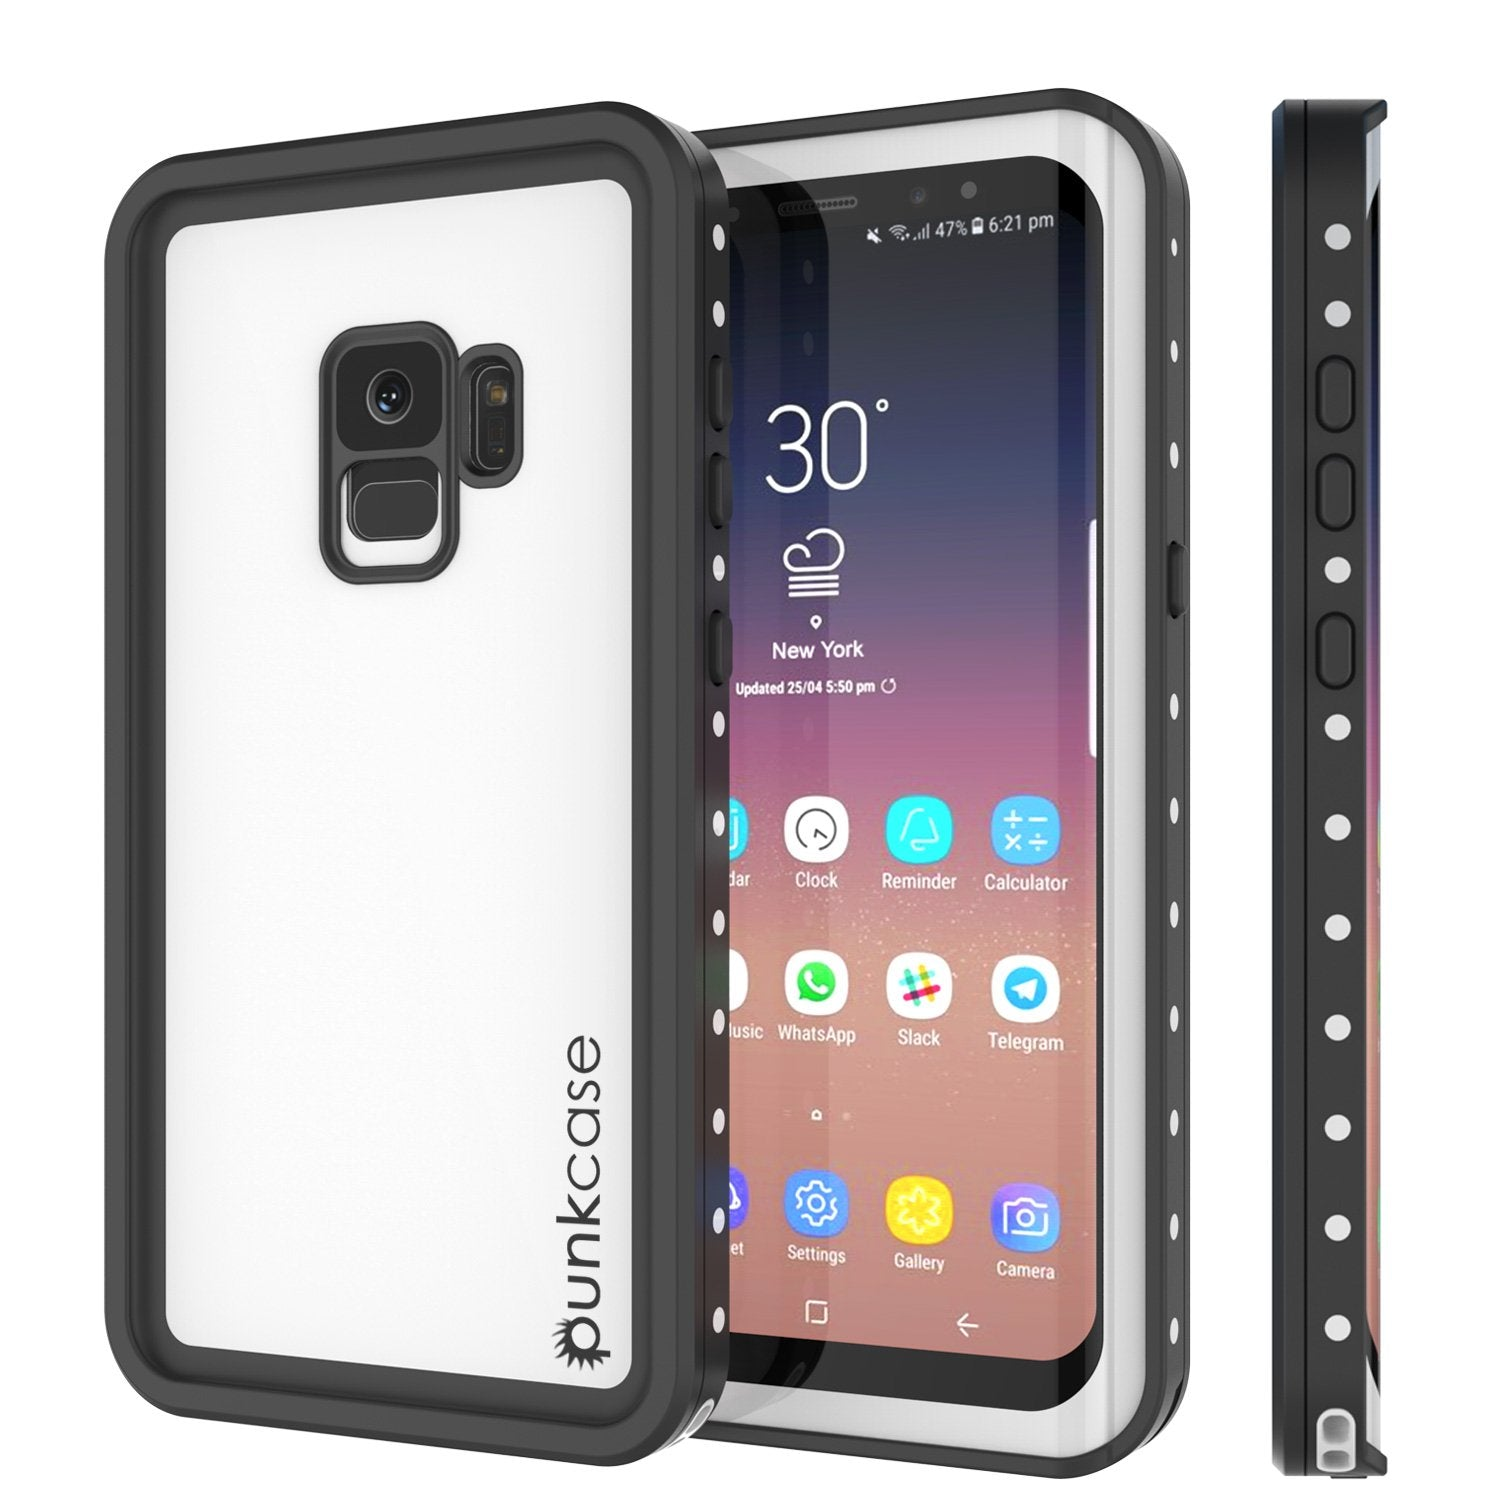 Galaxy S9 Waterproof Case, Punkcase StudStar White Thin 6.6ft Underwater IP68 Shock/Snow Proof